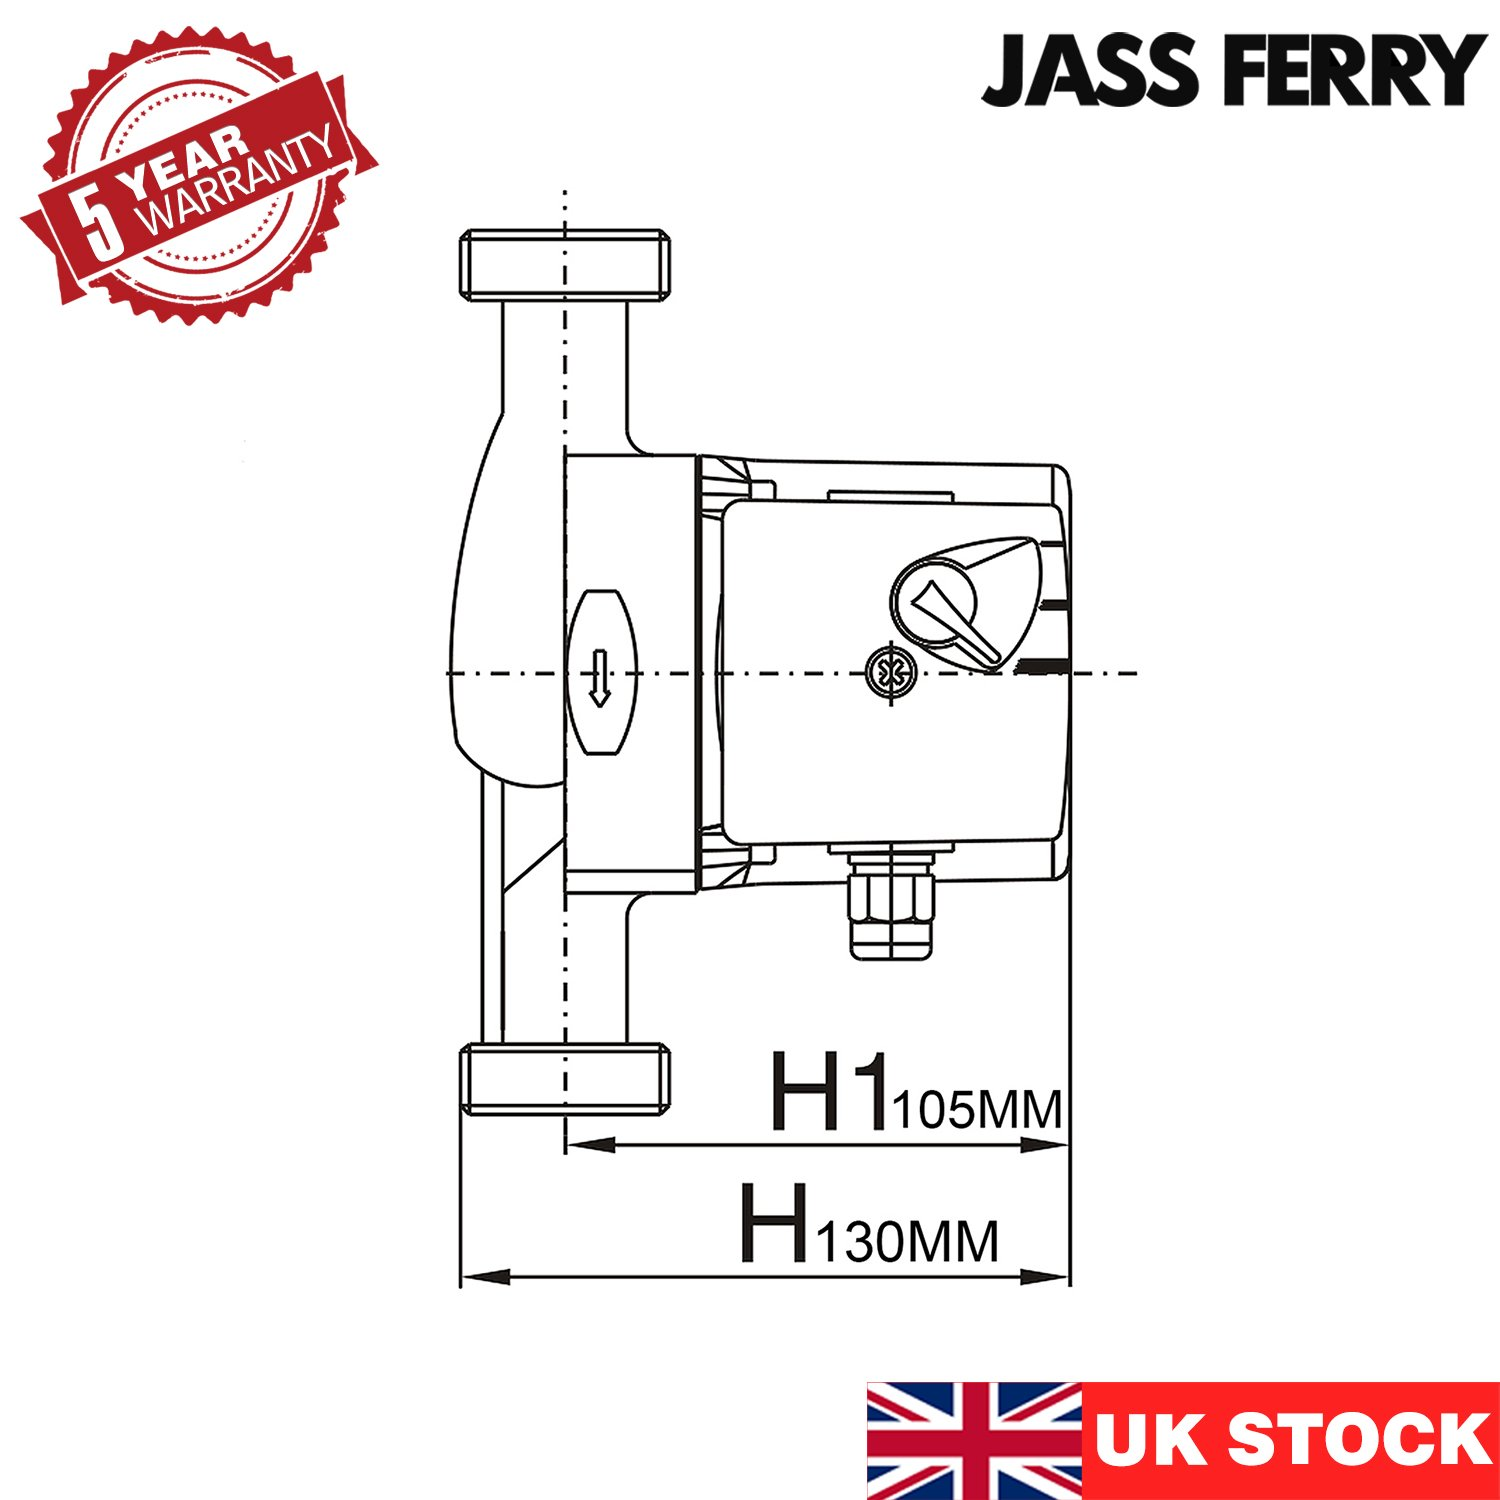 JASS Ferry A-Class Central Heating Circulator Pump Energy-Saving High Efficiency for Water Circulation Systems Replacement KBA25-6 II AC no Monitor